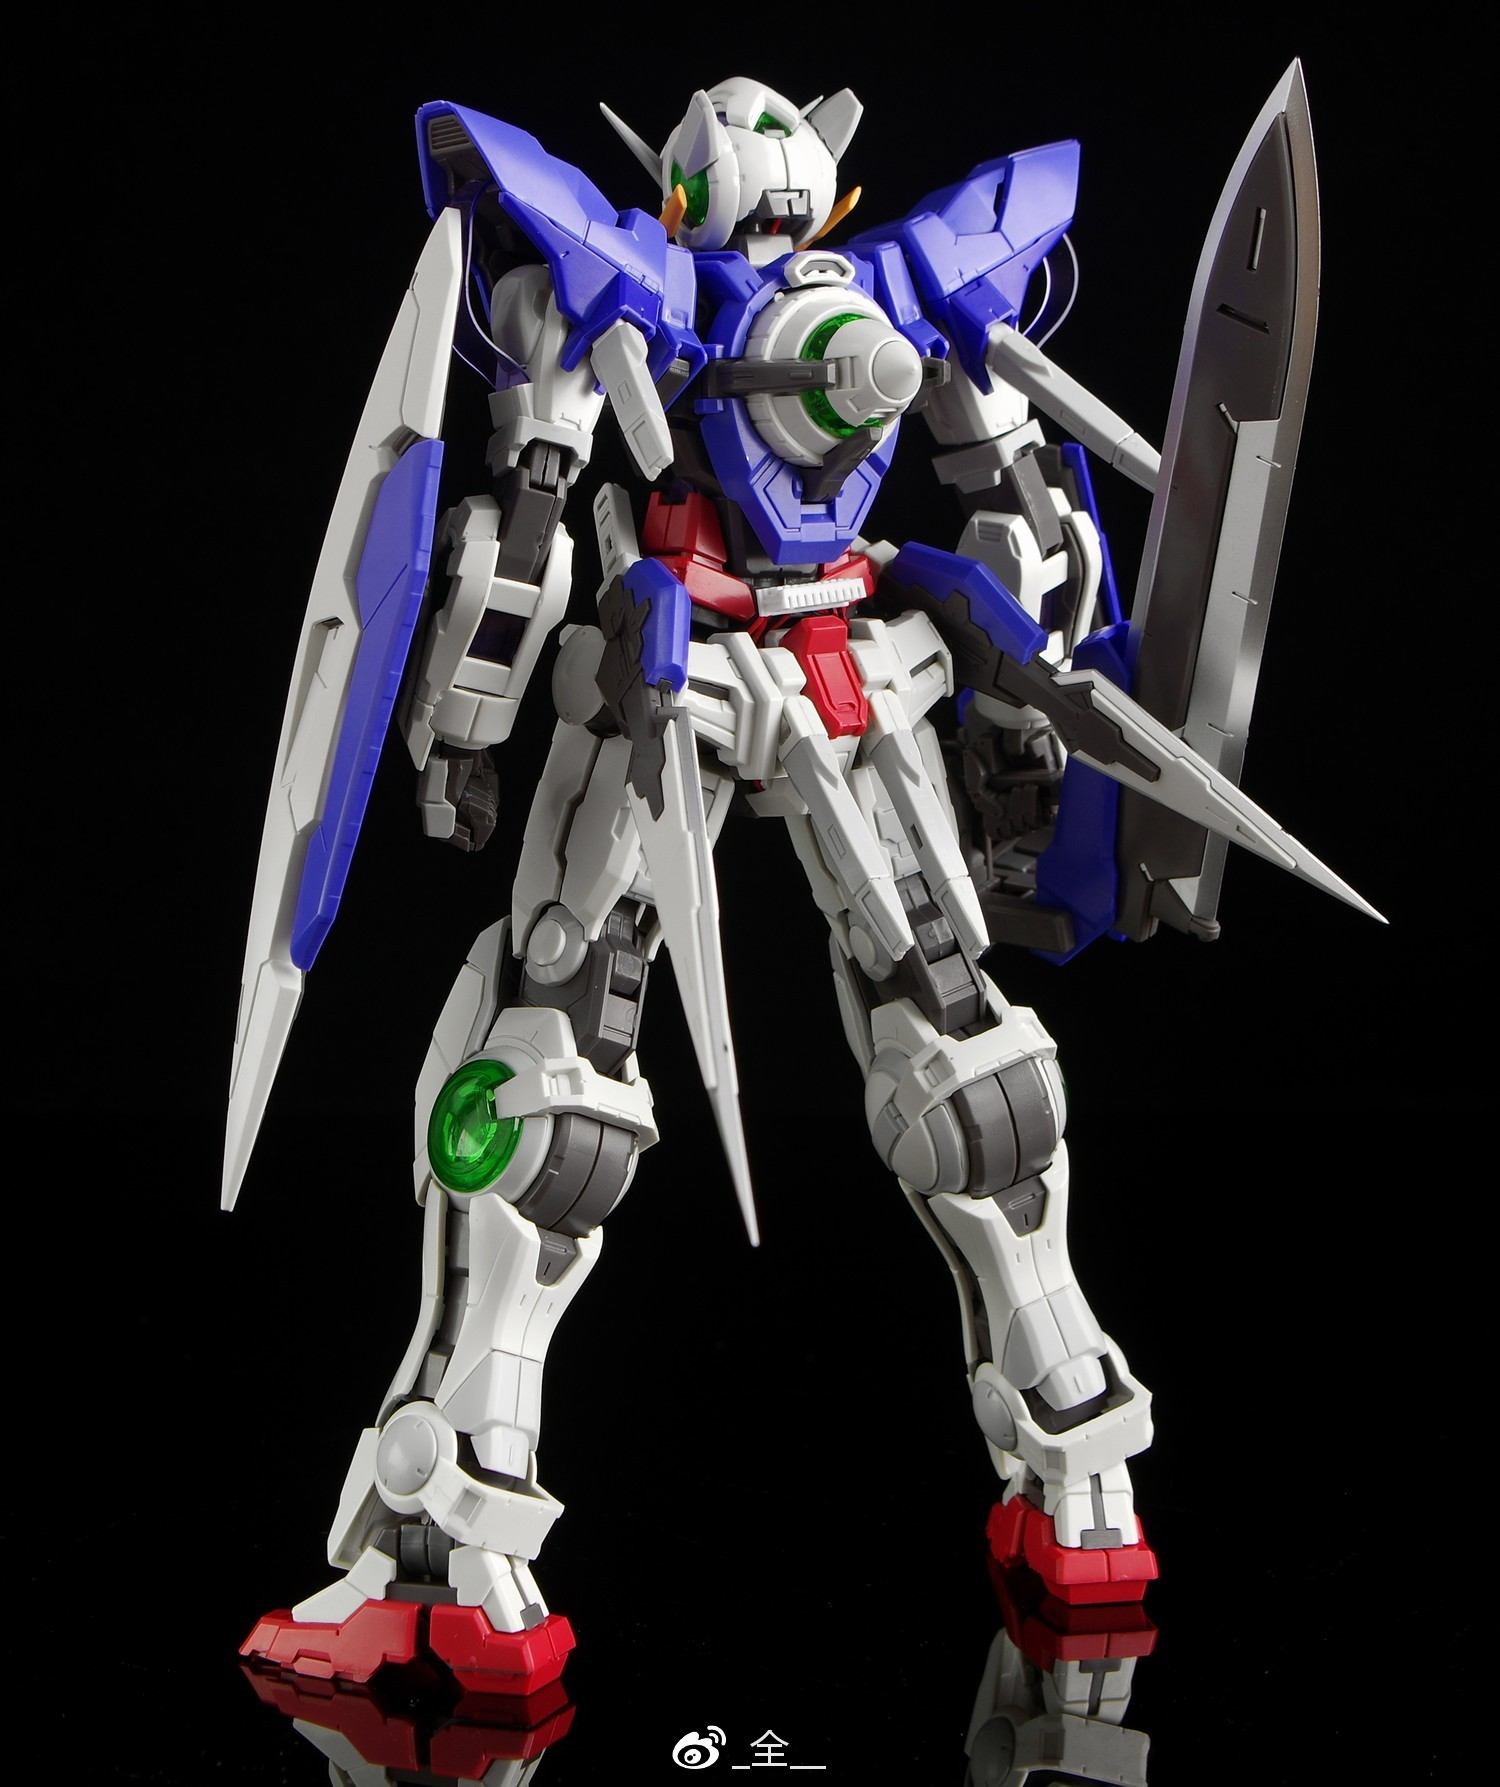 S269_mg_exia_led_hobby_star_inask_065.jpg